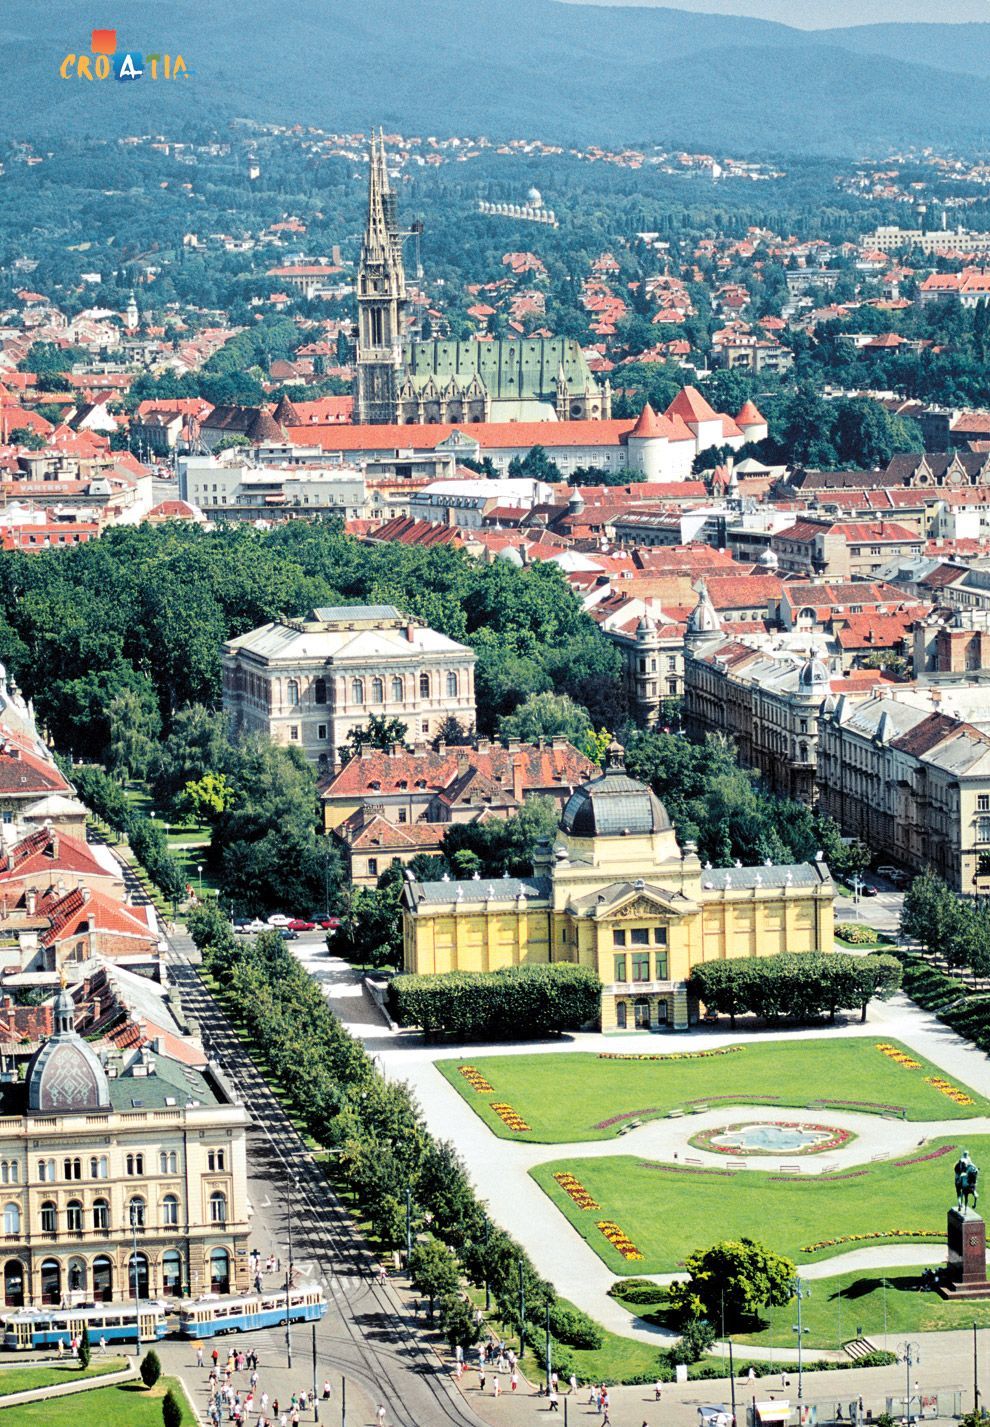 Destinations En Gb Visit Croatia Zagreb Croatia Croatia Travel